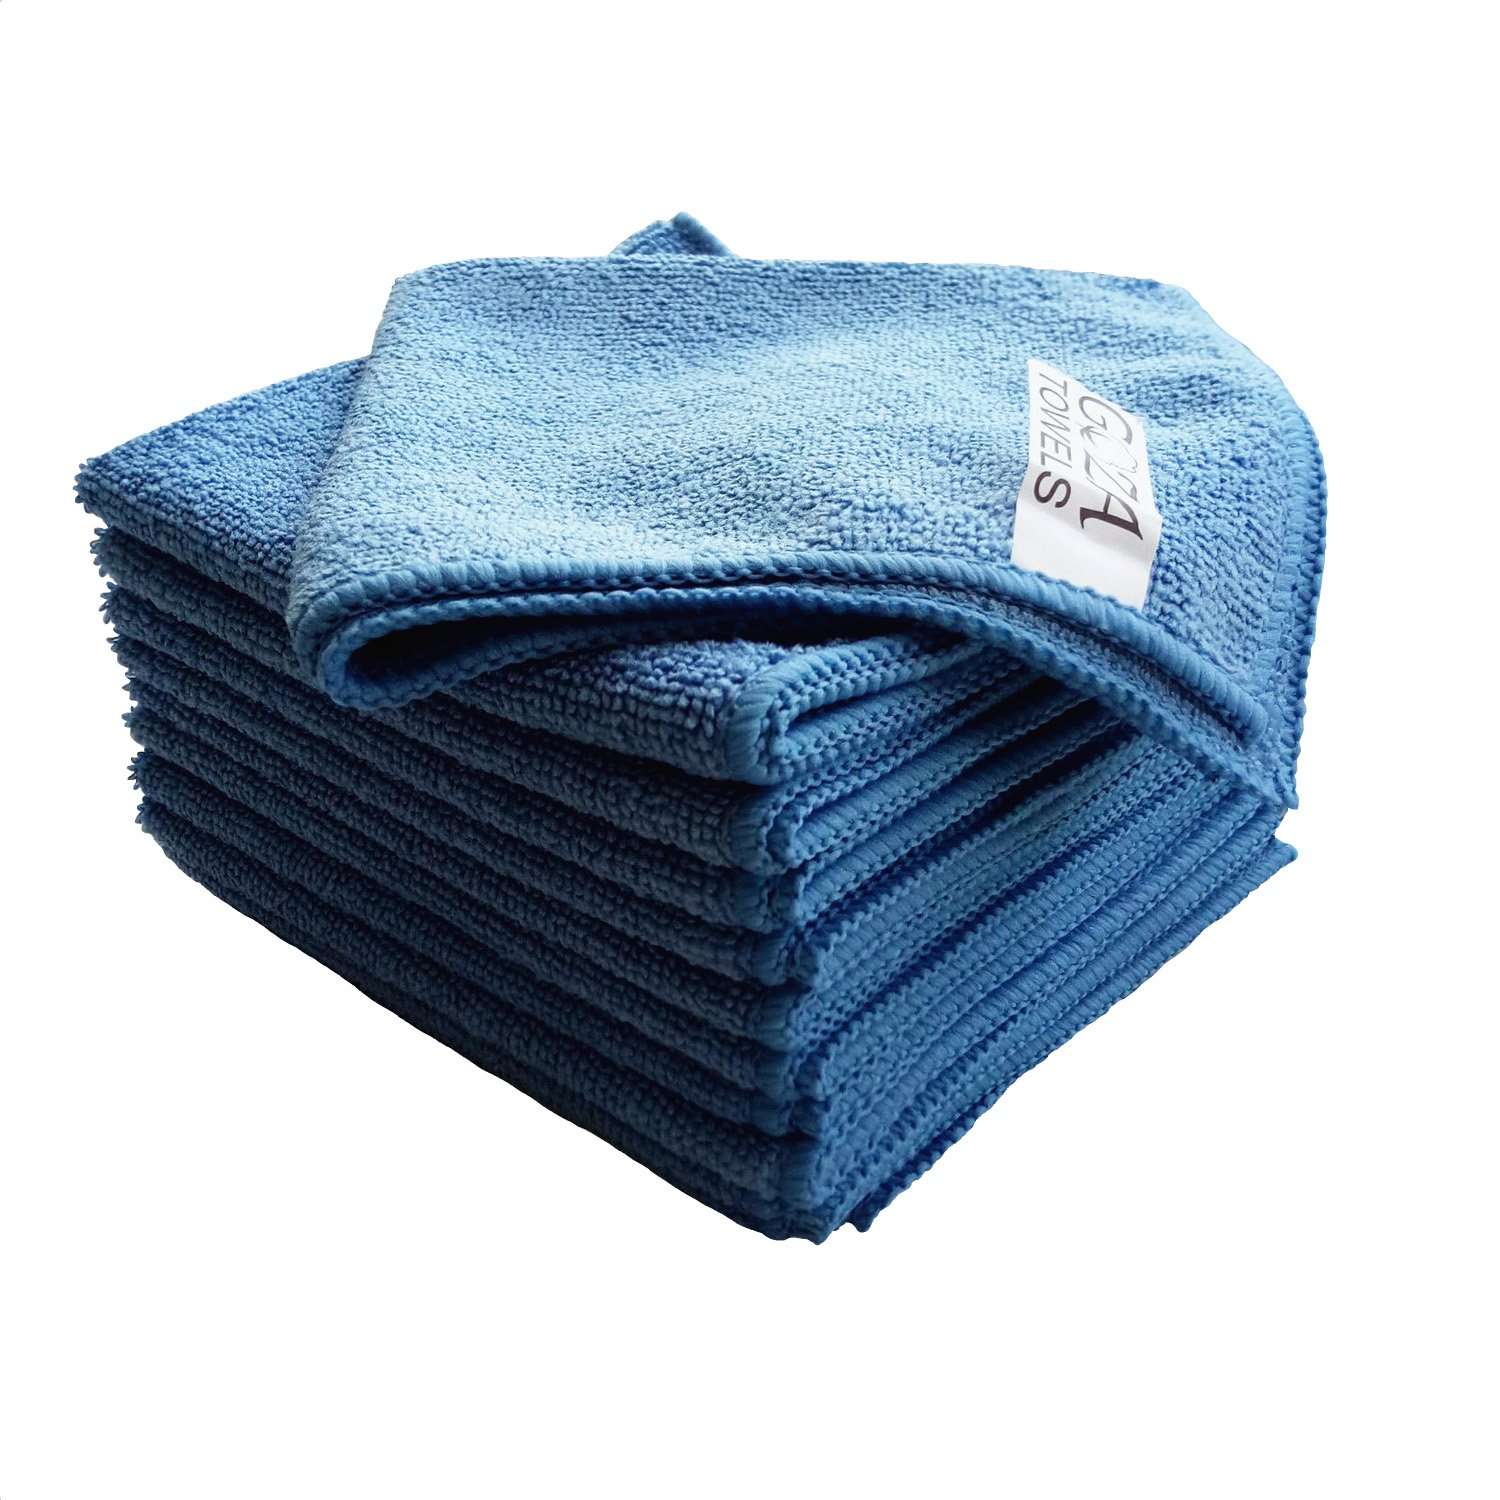 sola makers cleaning cloths - HD1500×1500